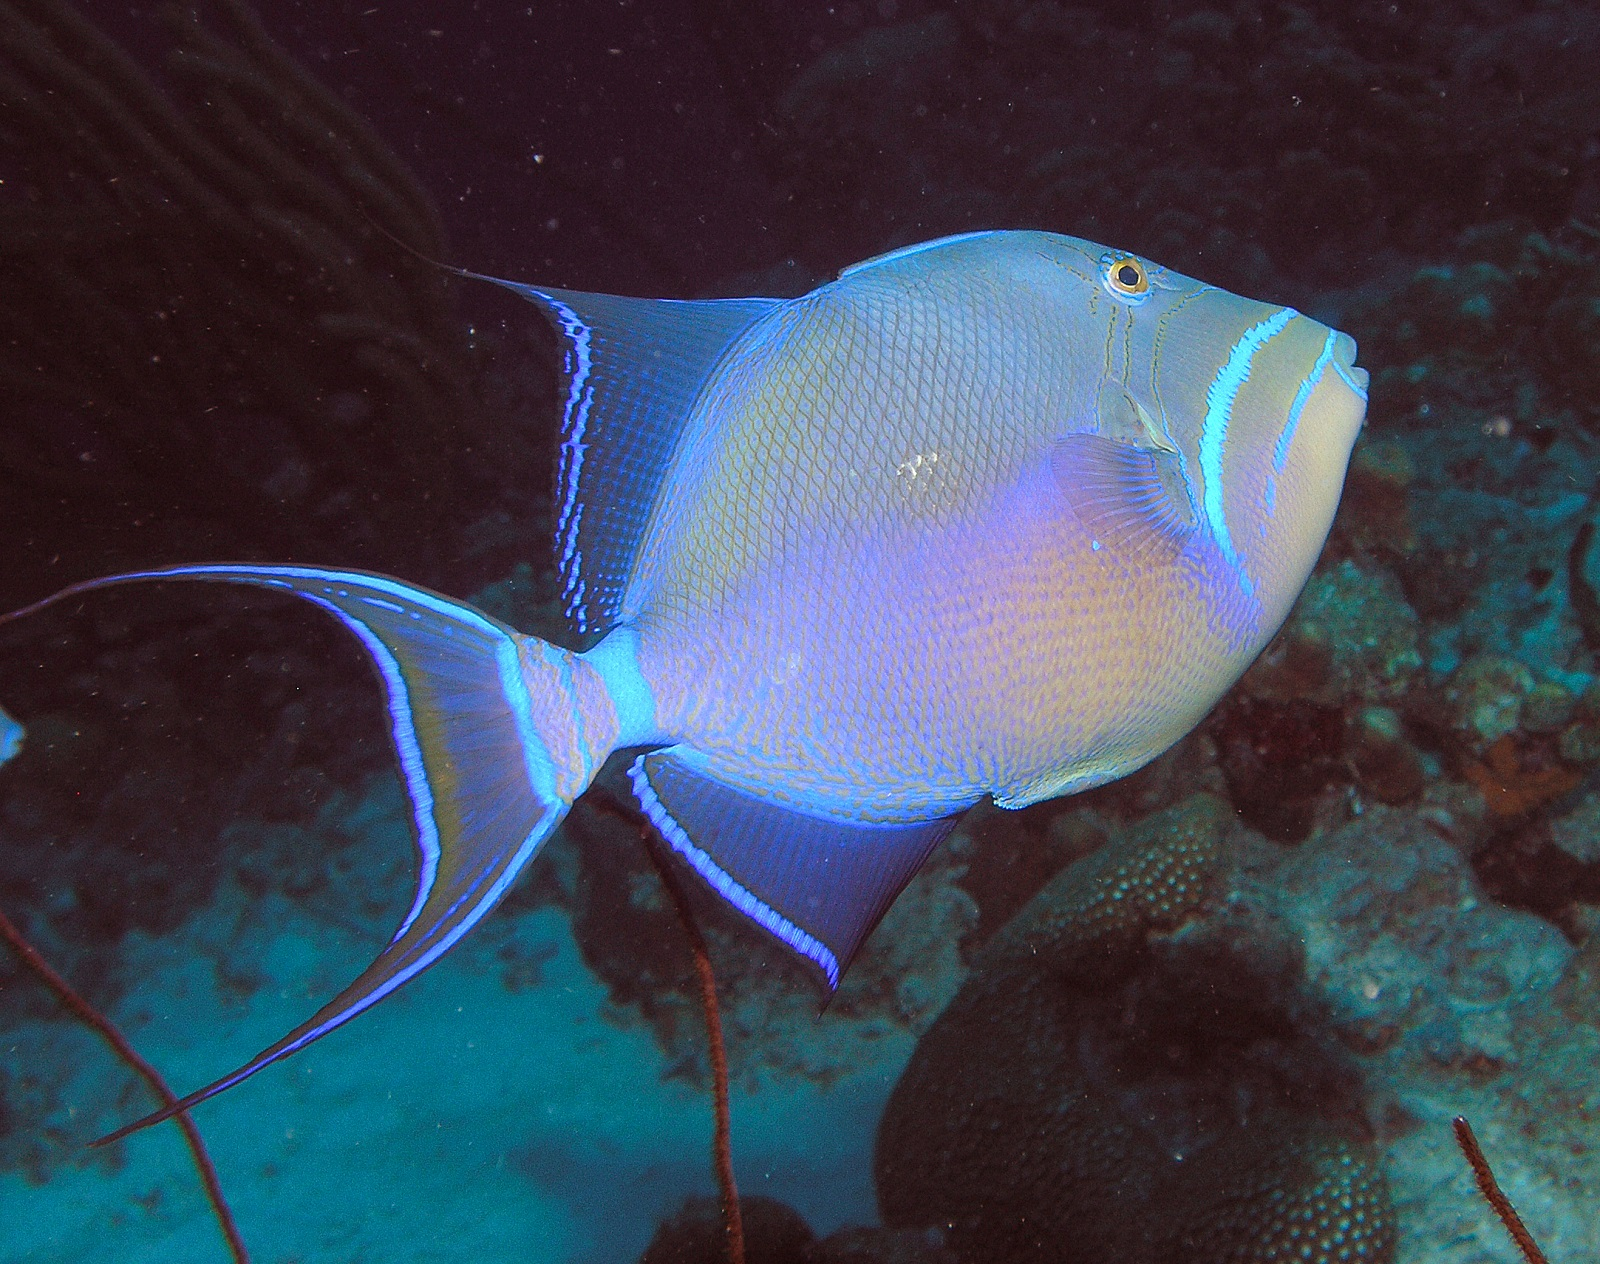 Queen triggerfish swims wallpaper